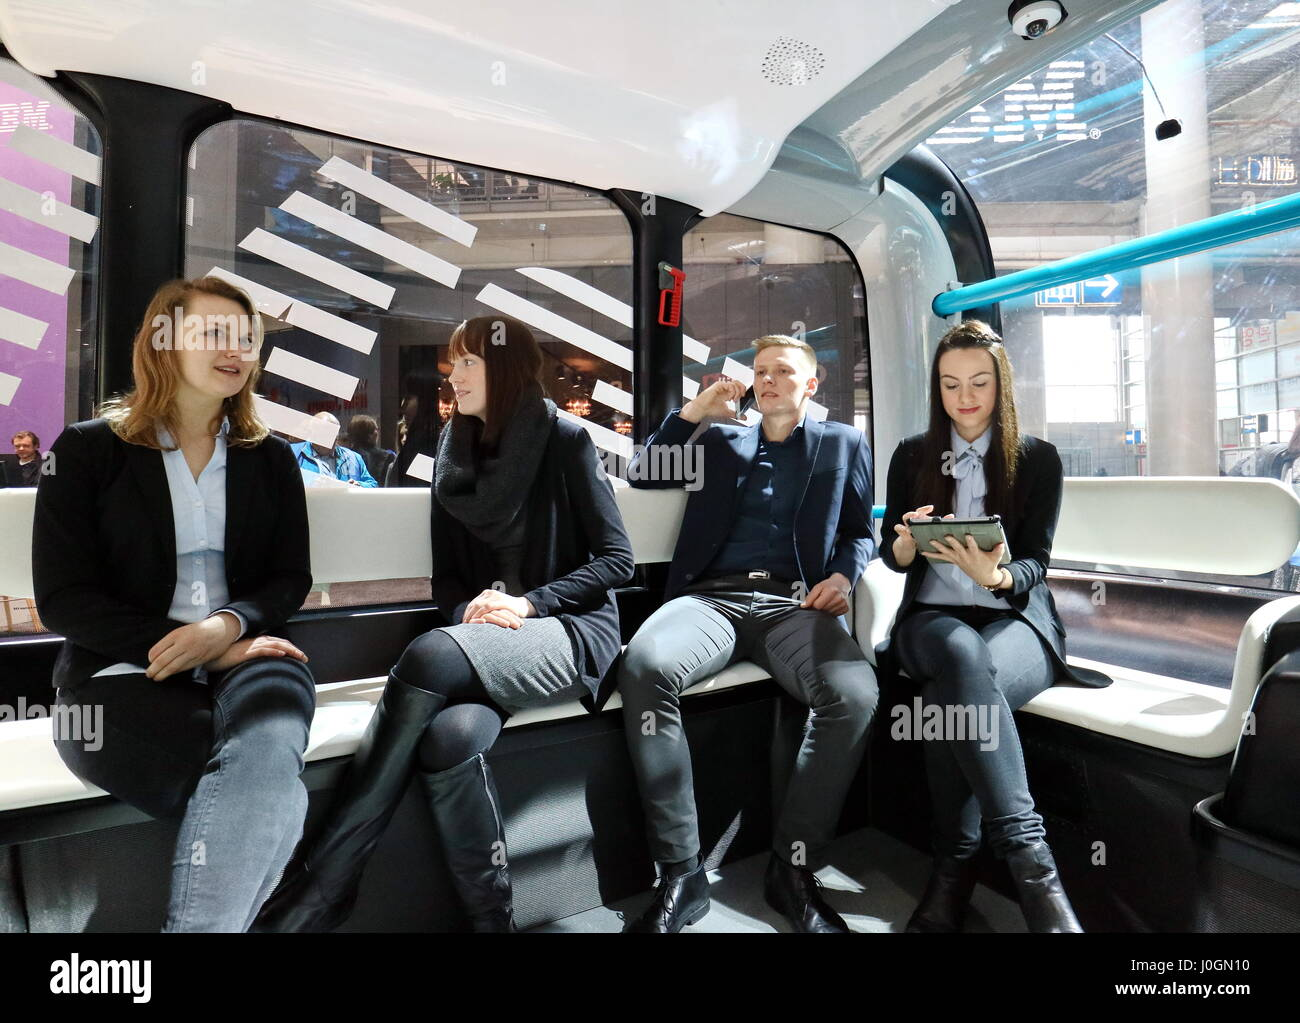 """Hanover, Germany. 19th March, 2017. Passengers self-driving electric minibus """"Olli"""", developed by Local Motors in Stock Photo"""